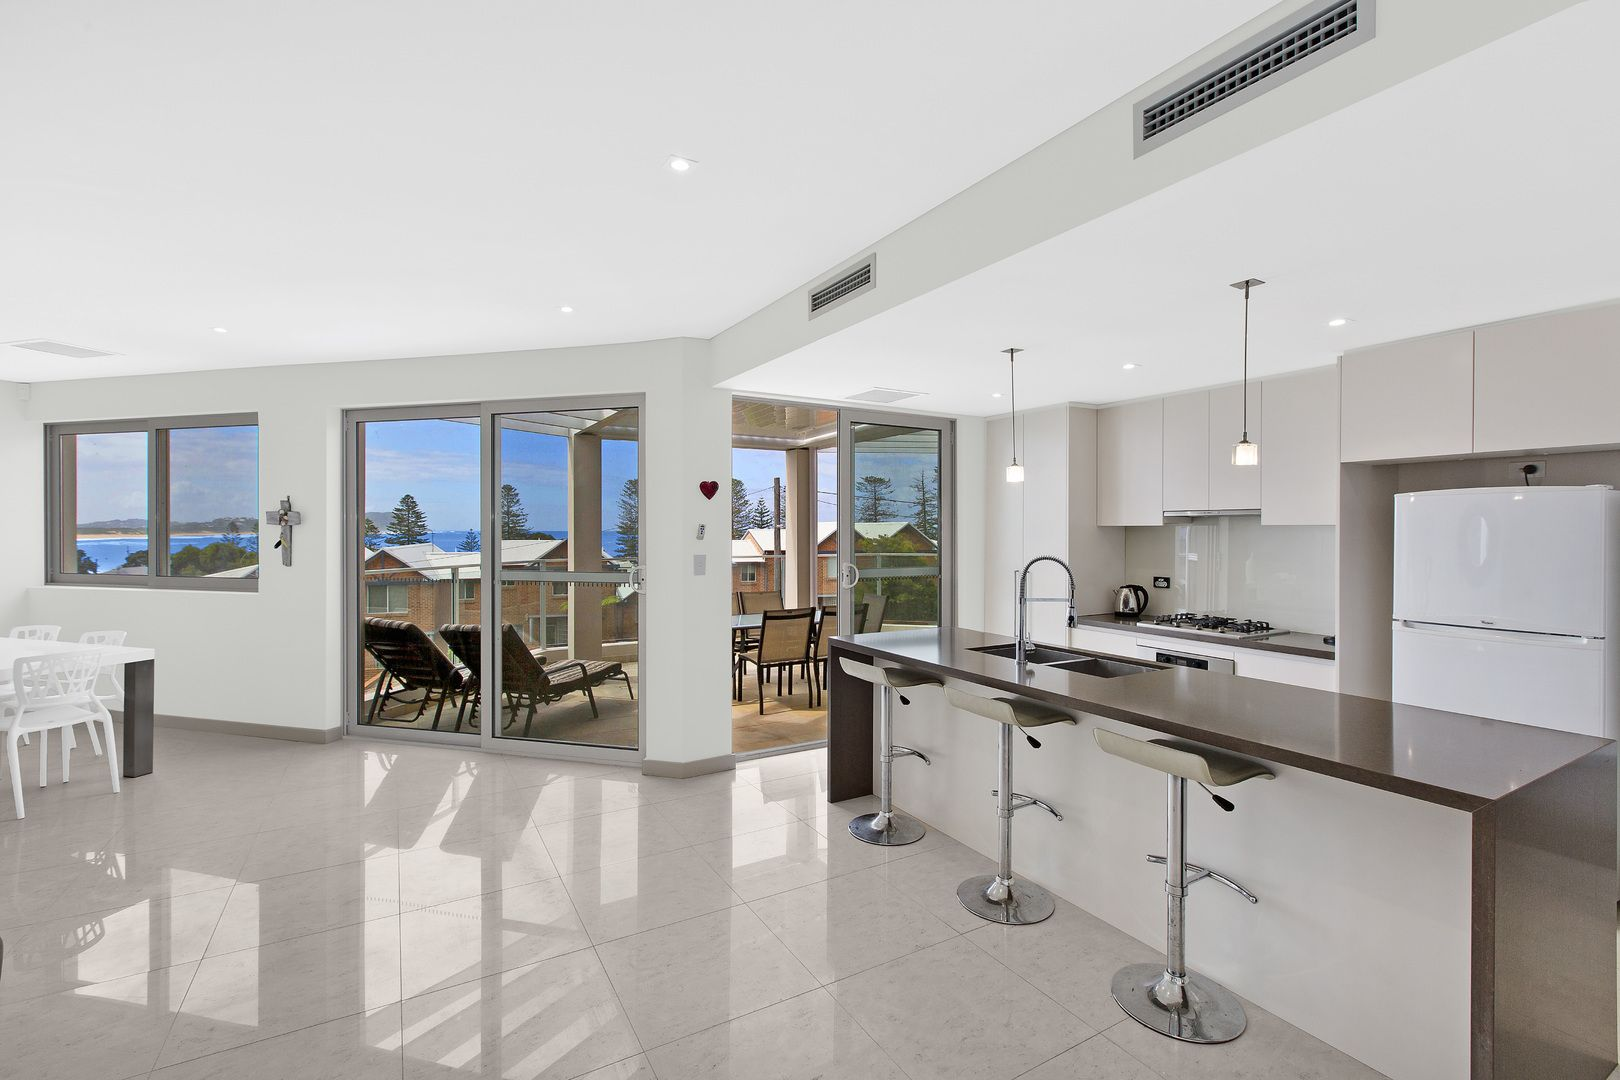 Terrigal Real Estate: The Beach Life